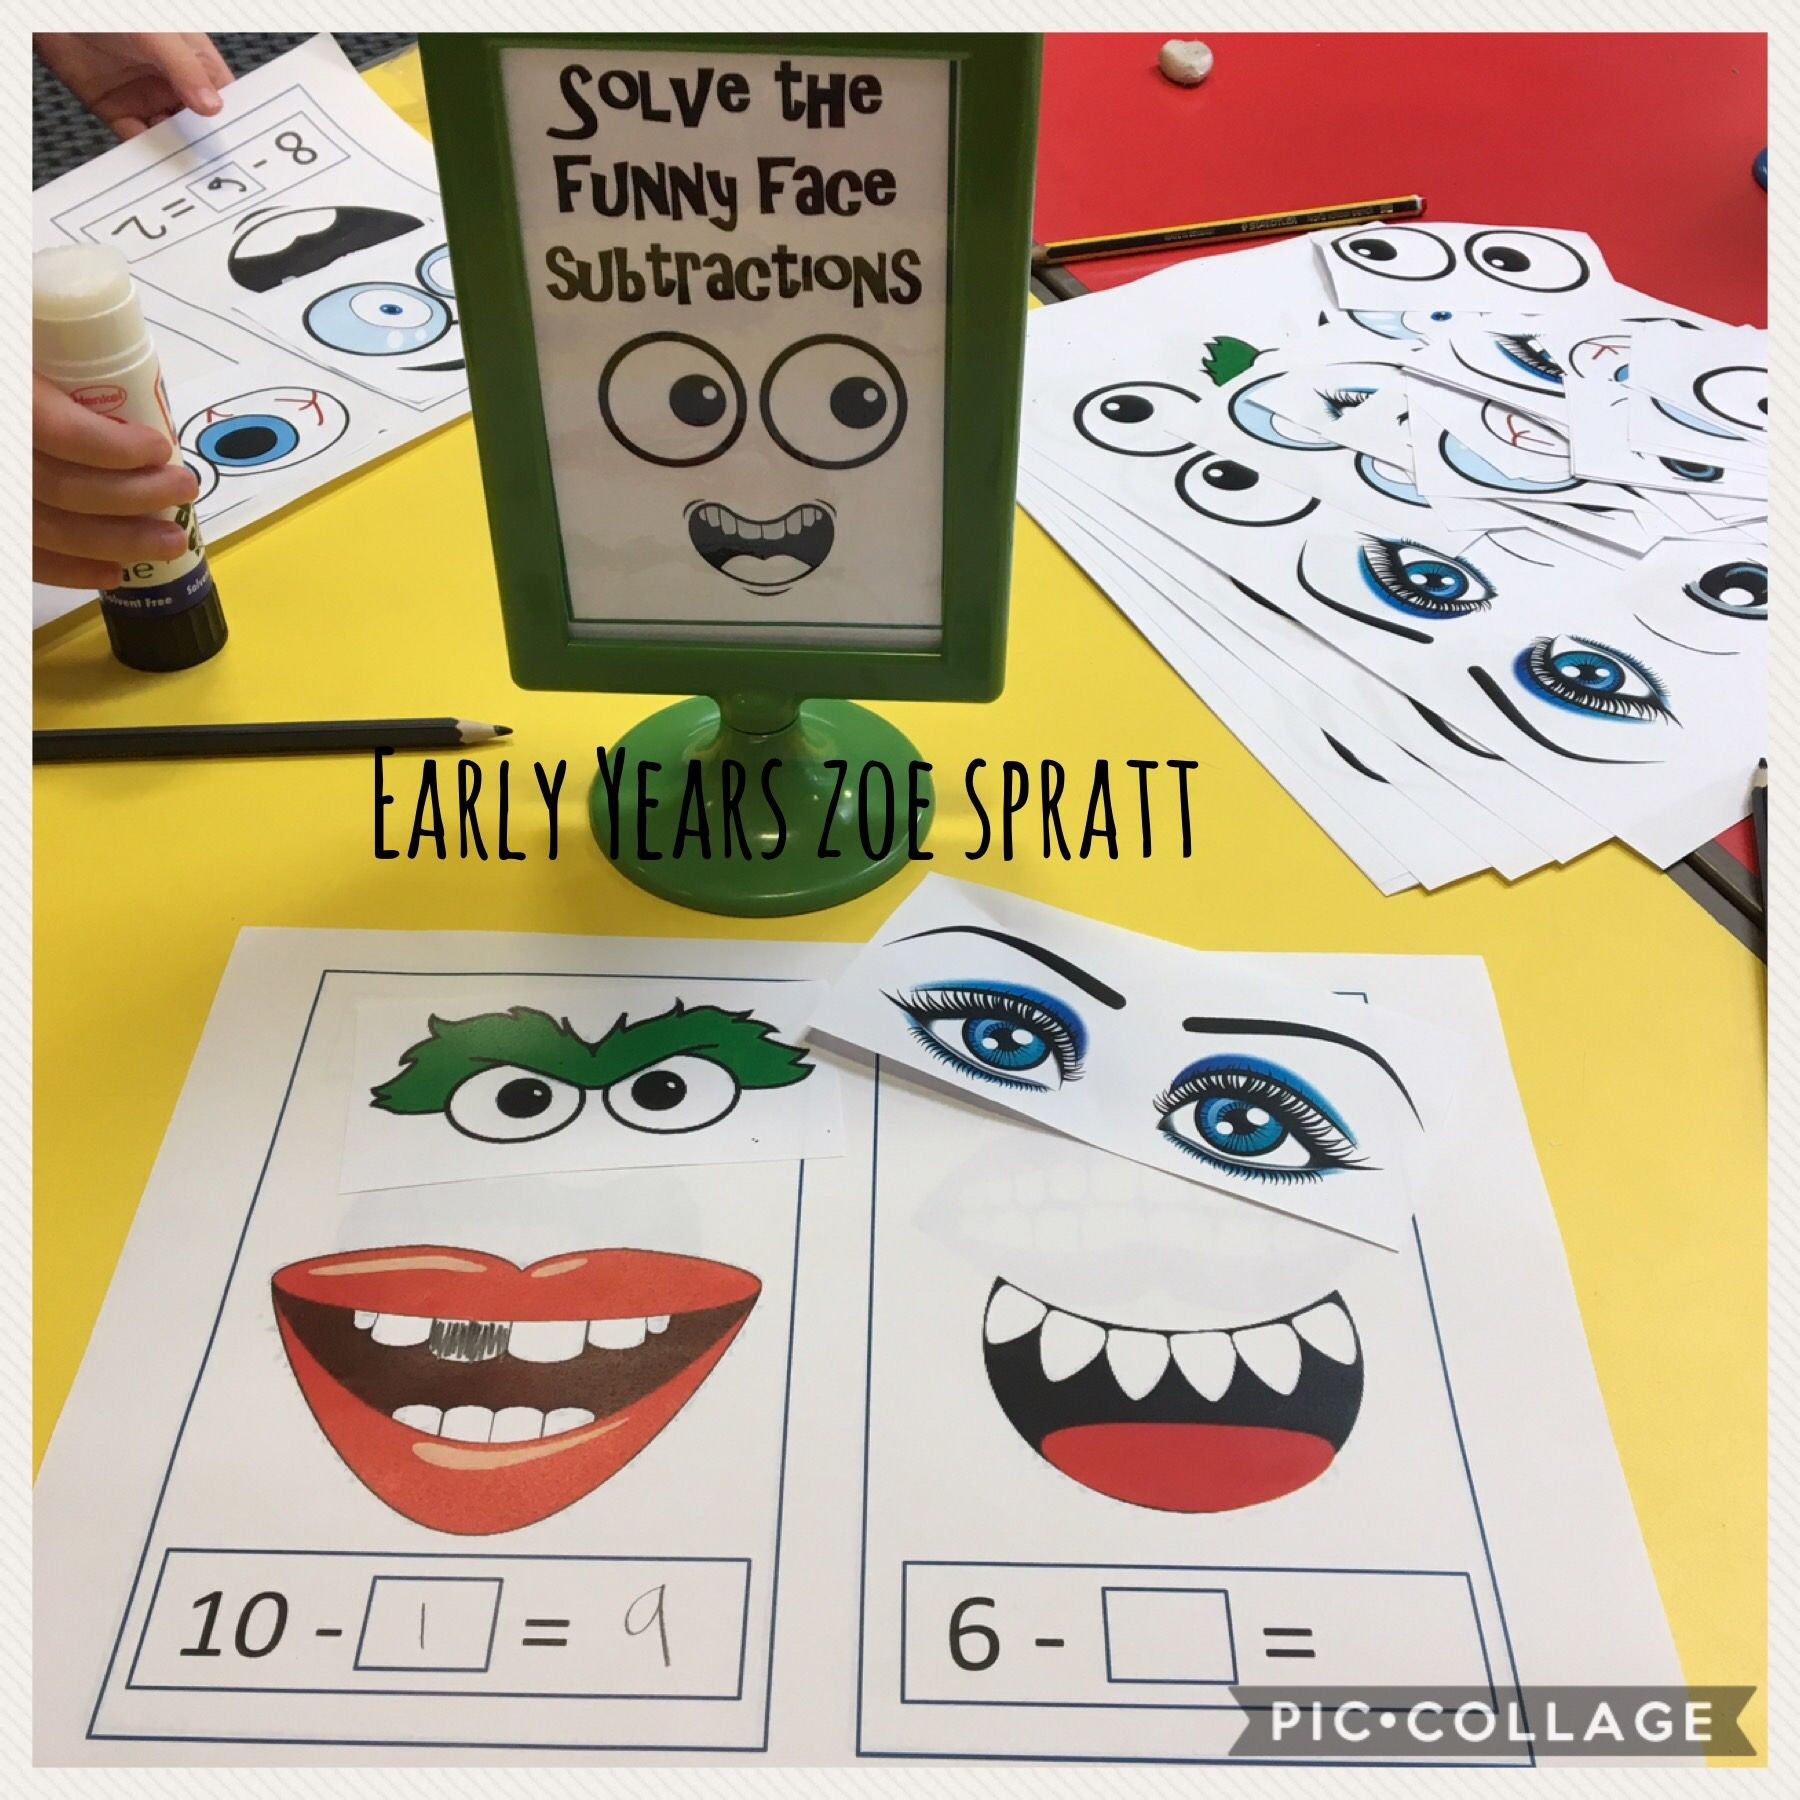 Subtraction Funny Faces